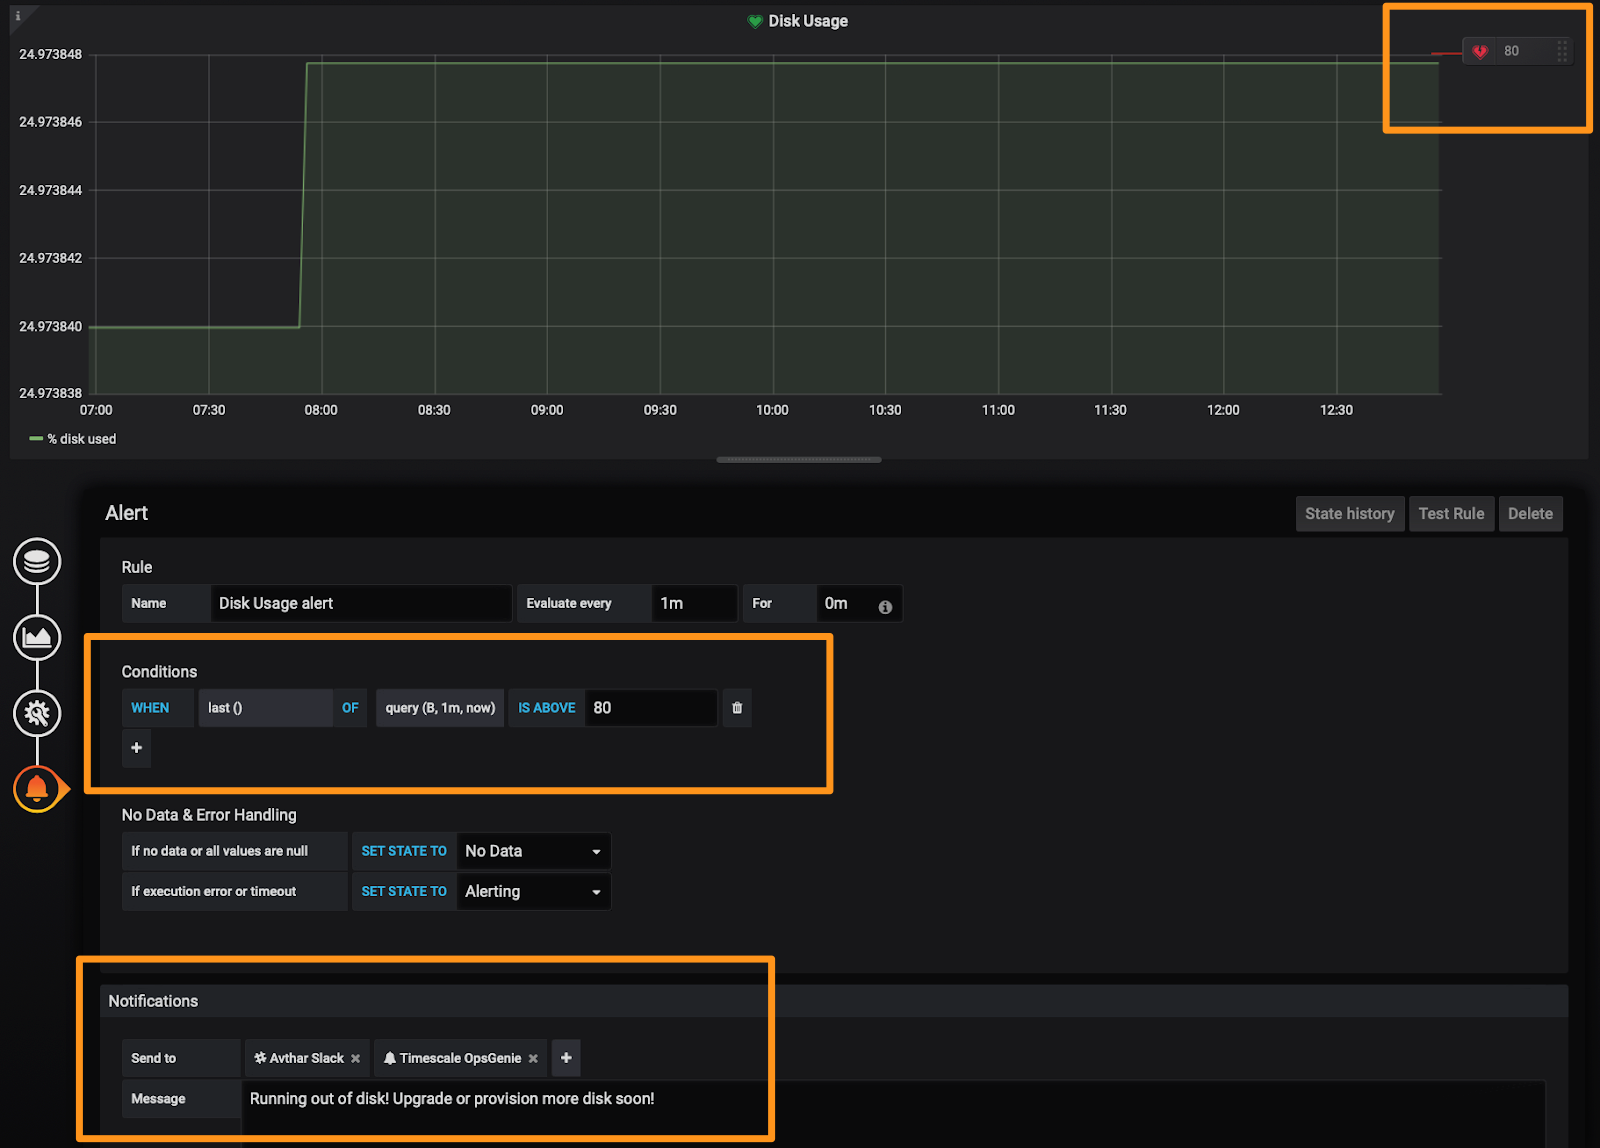 Grafana alert panel showing settings for alert about disk usage